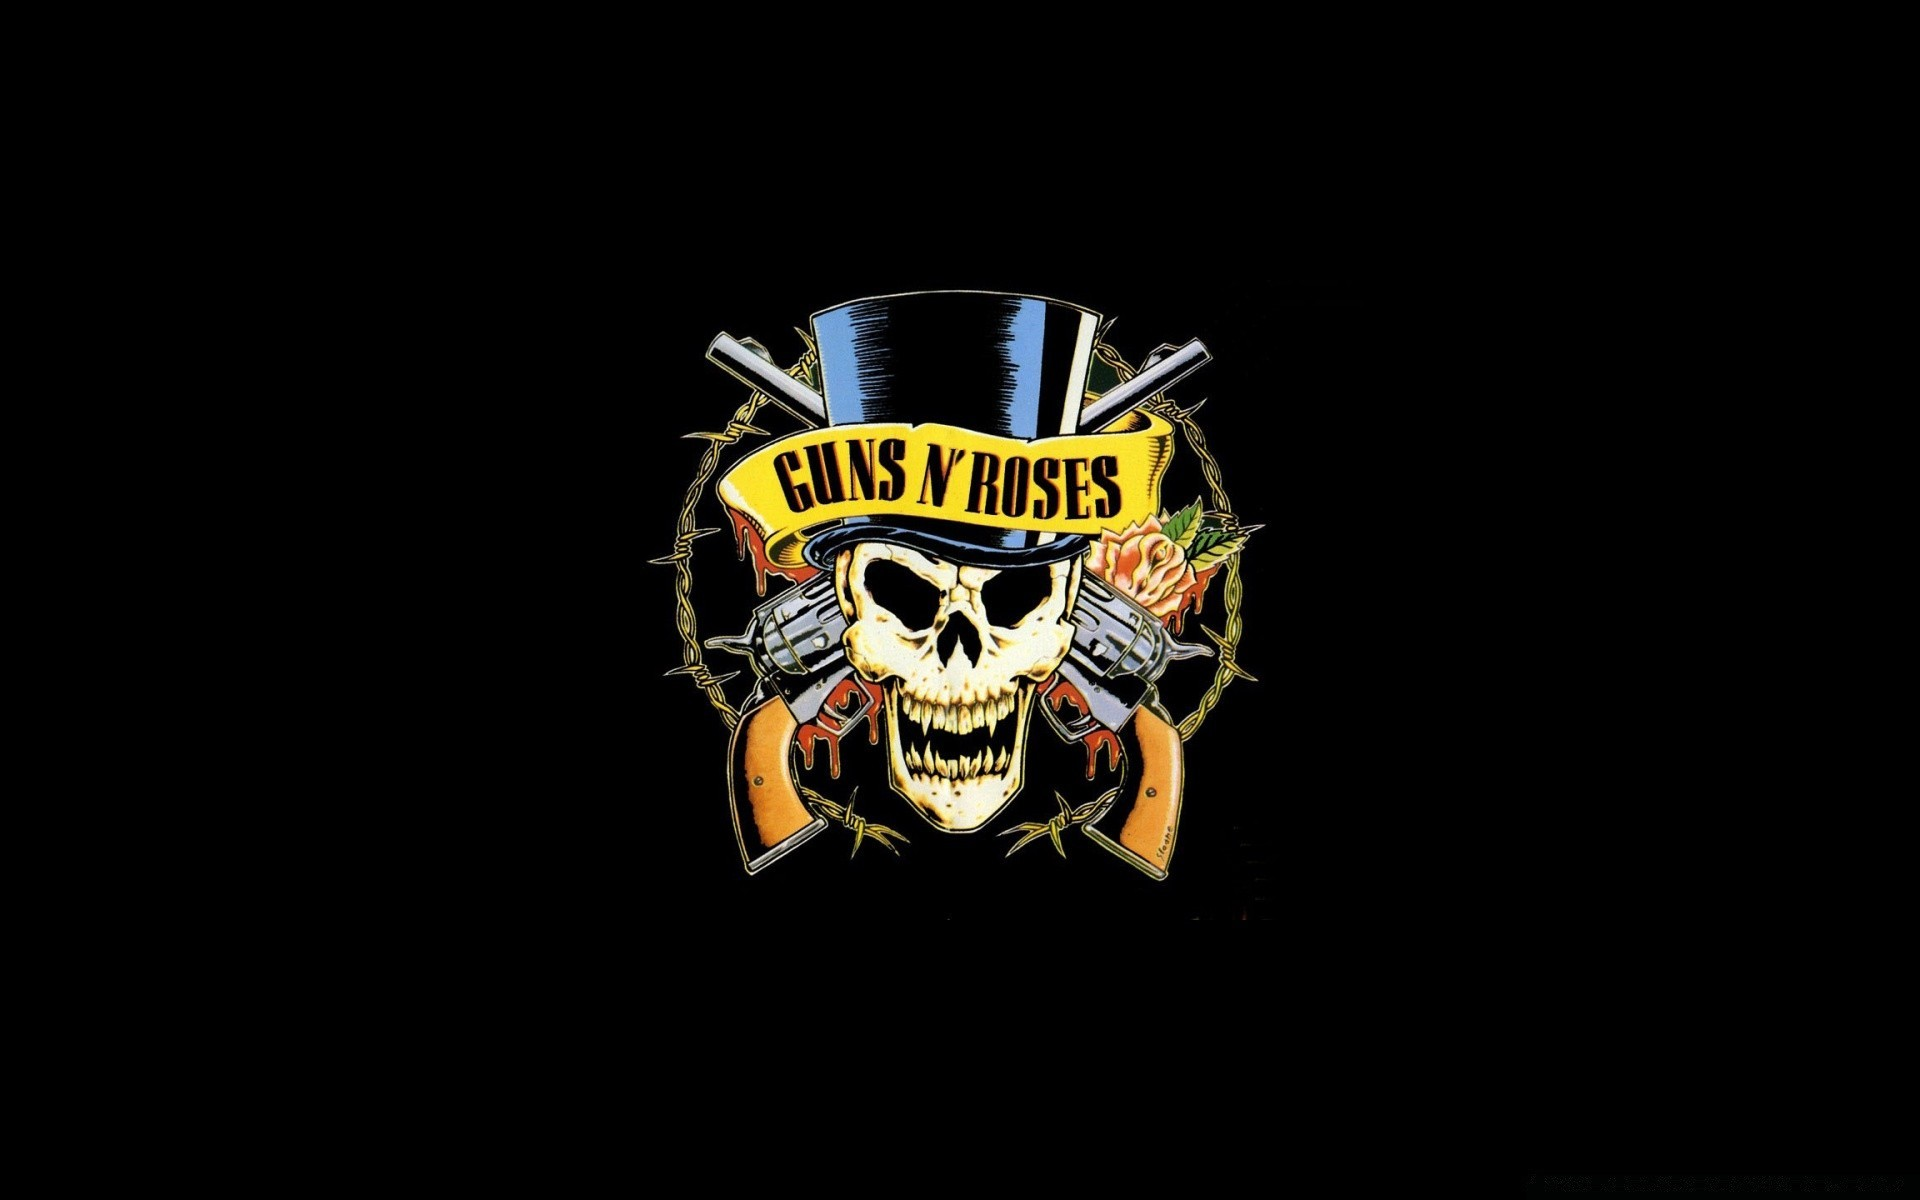 Guns N Roses Logo Hd Android Wallpapers